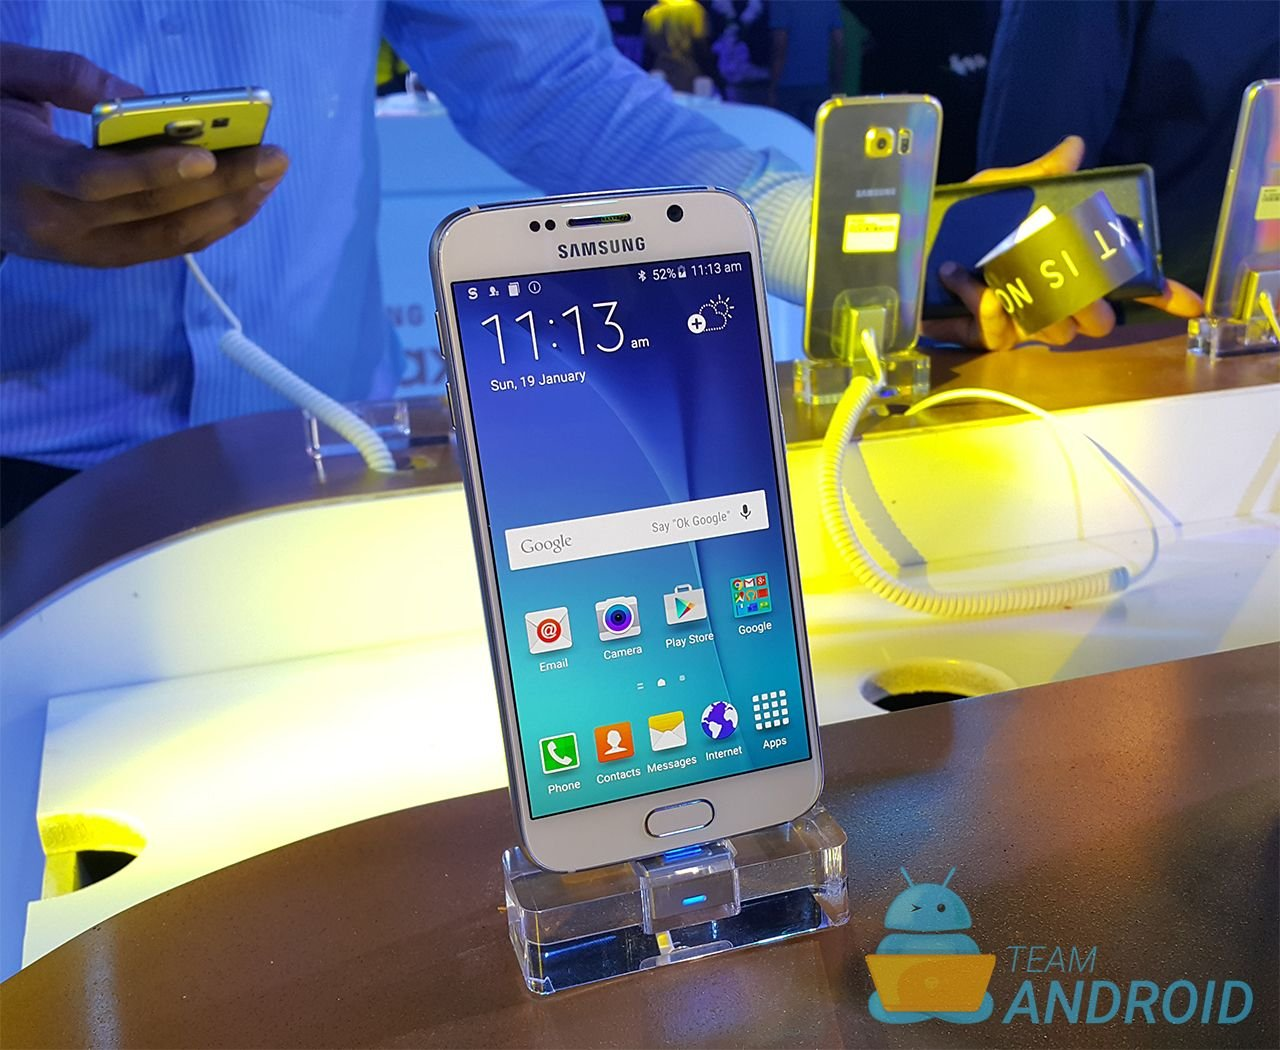 Samsung Galaxy S6 And S6 edge Marshmallow Is Now Available In Europe 1